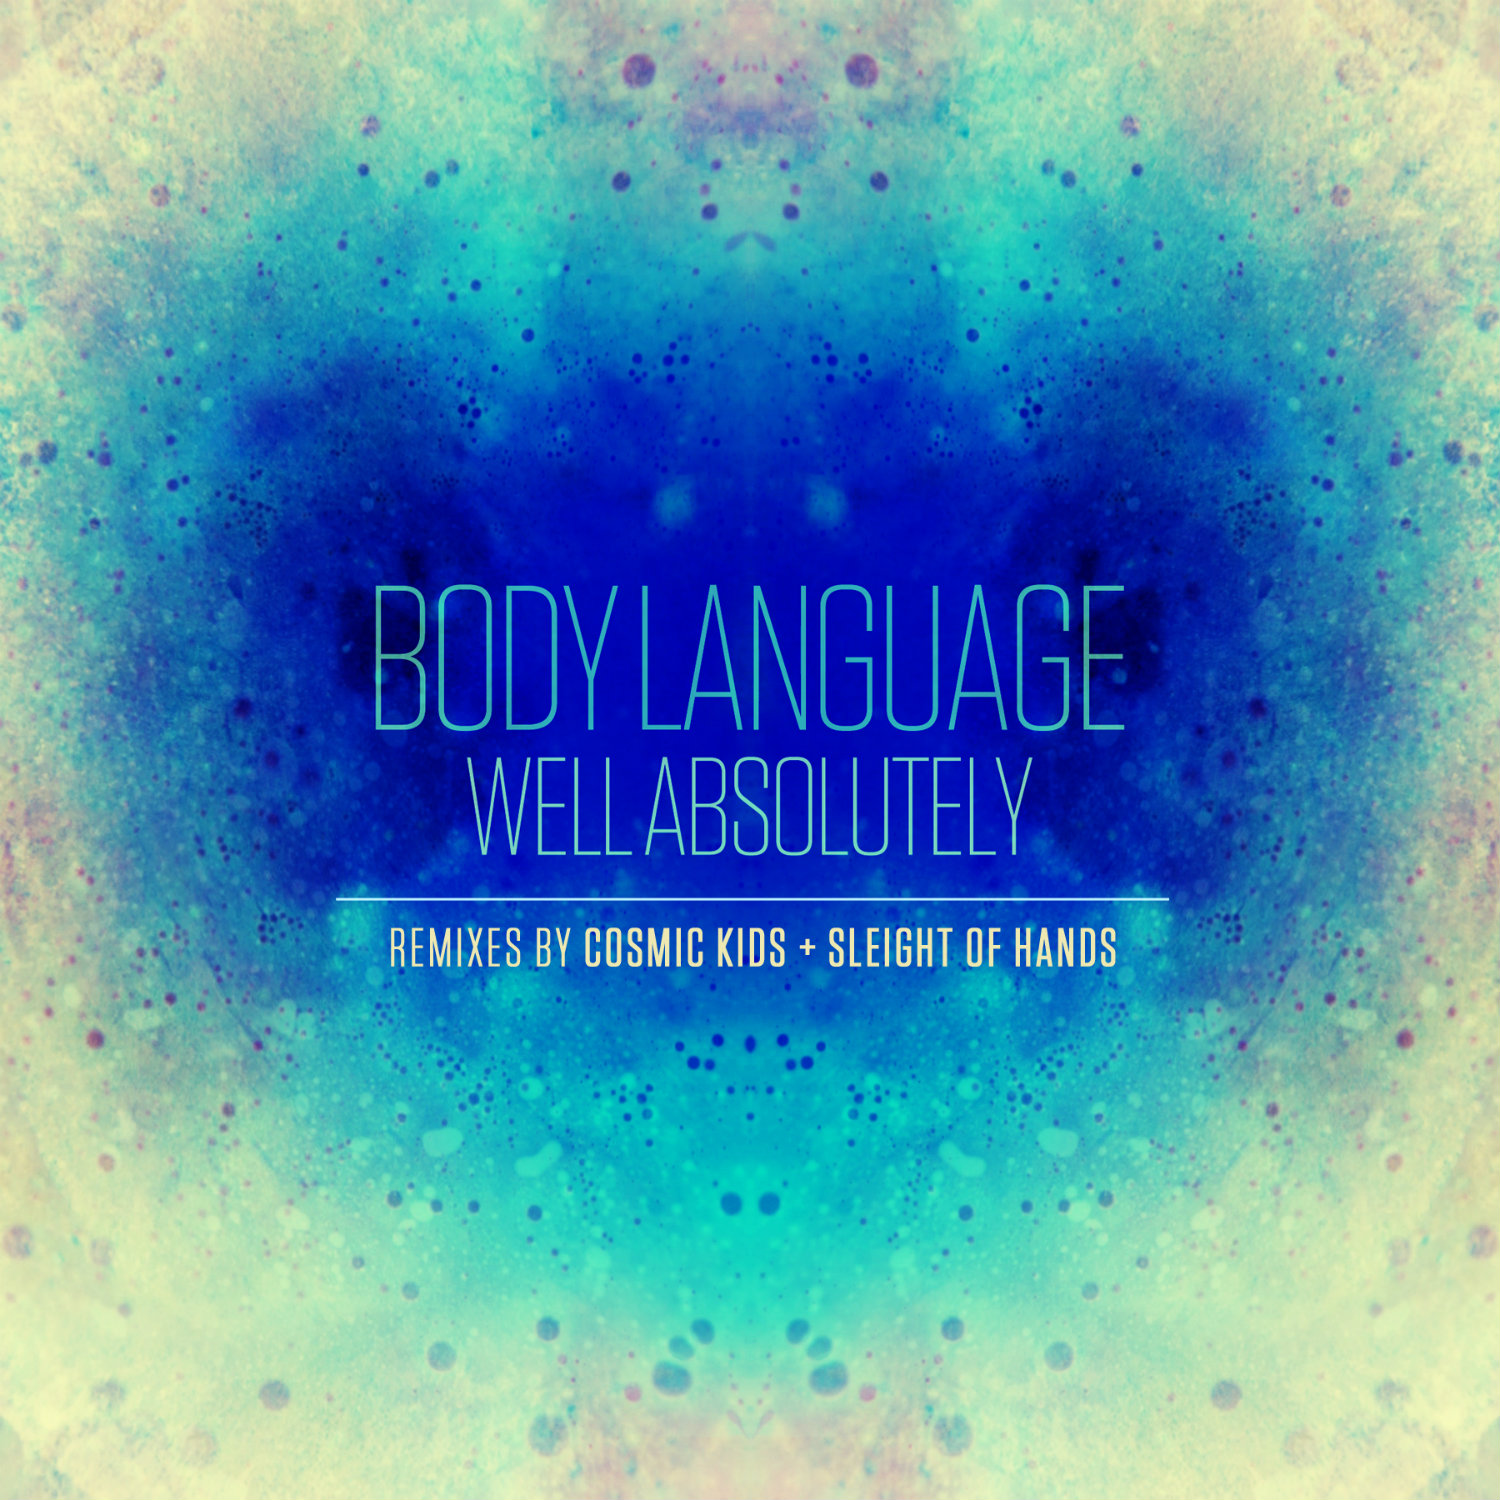 Body Language - Well Absolutely (Smoke N' Mirrors Remixes)